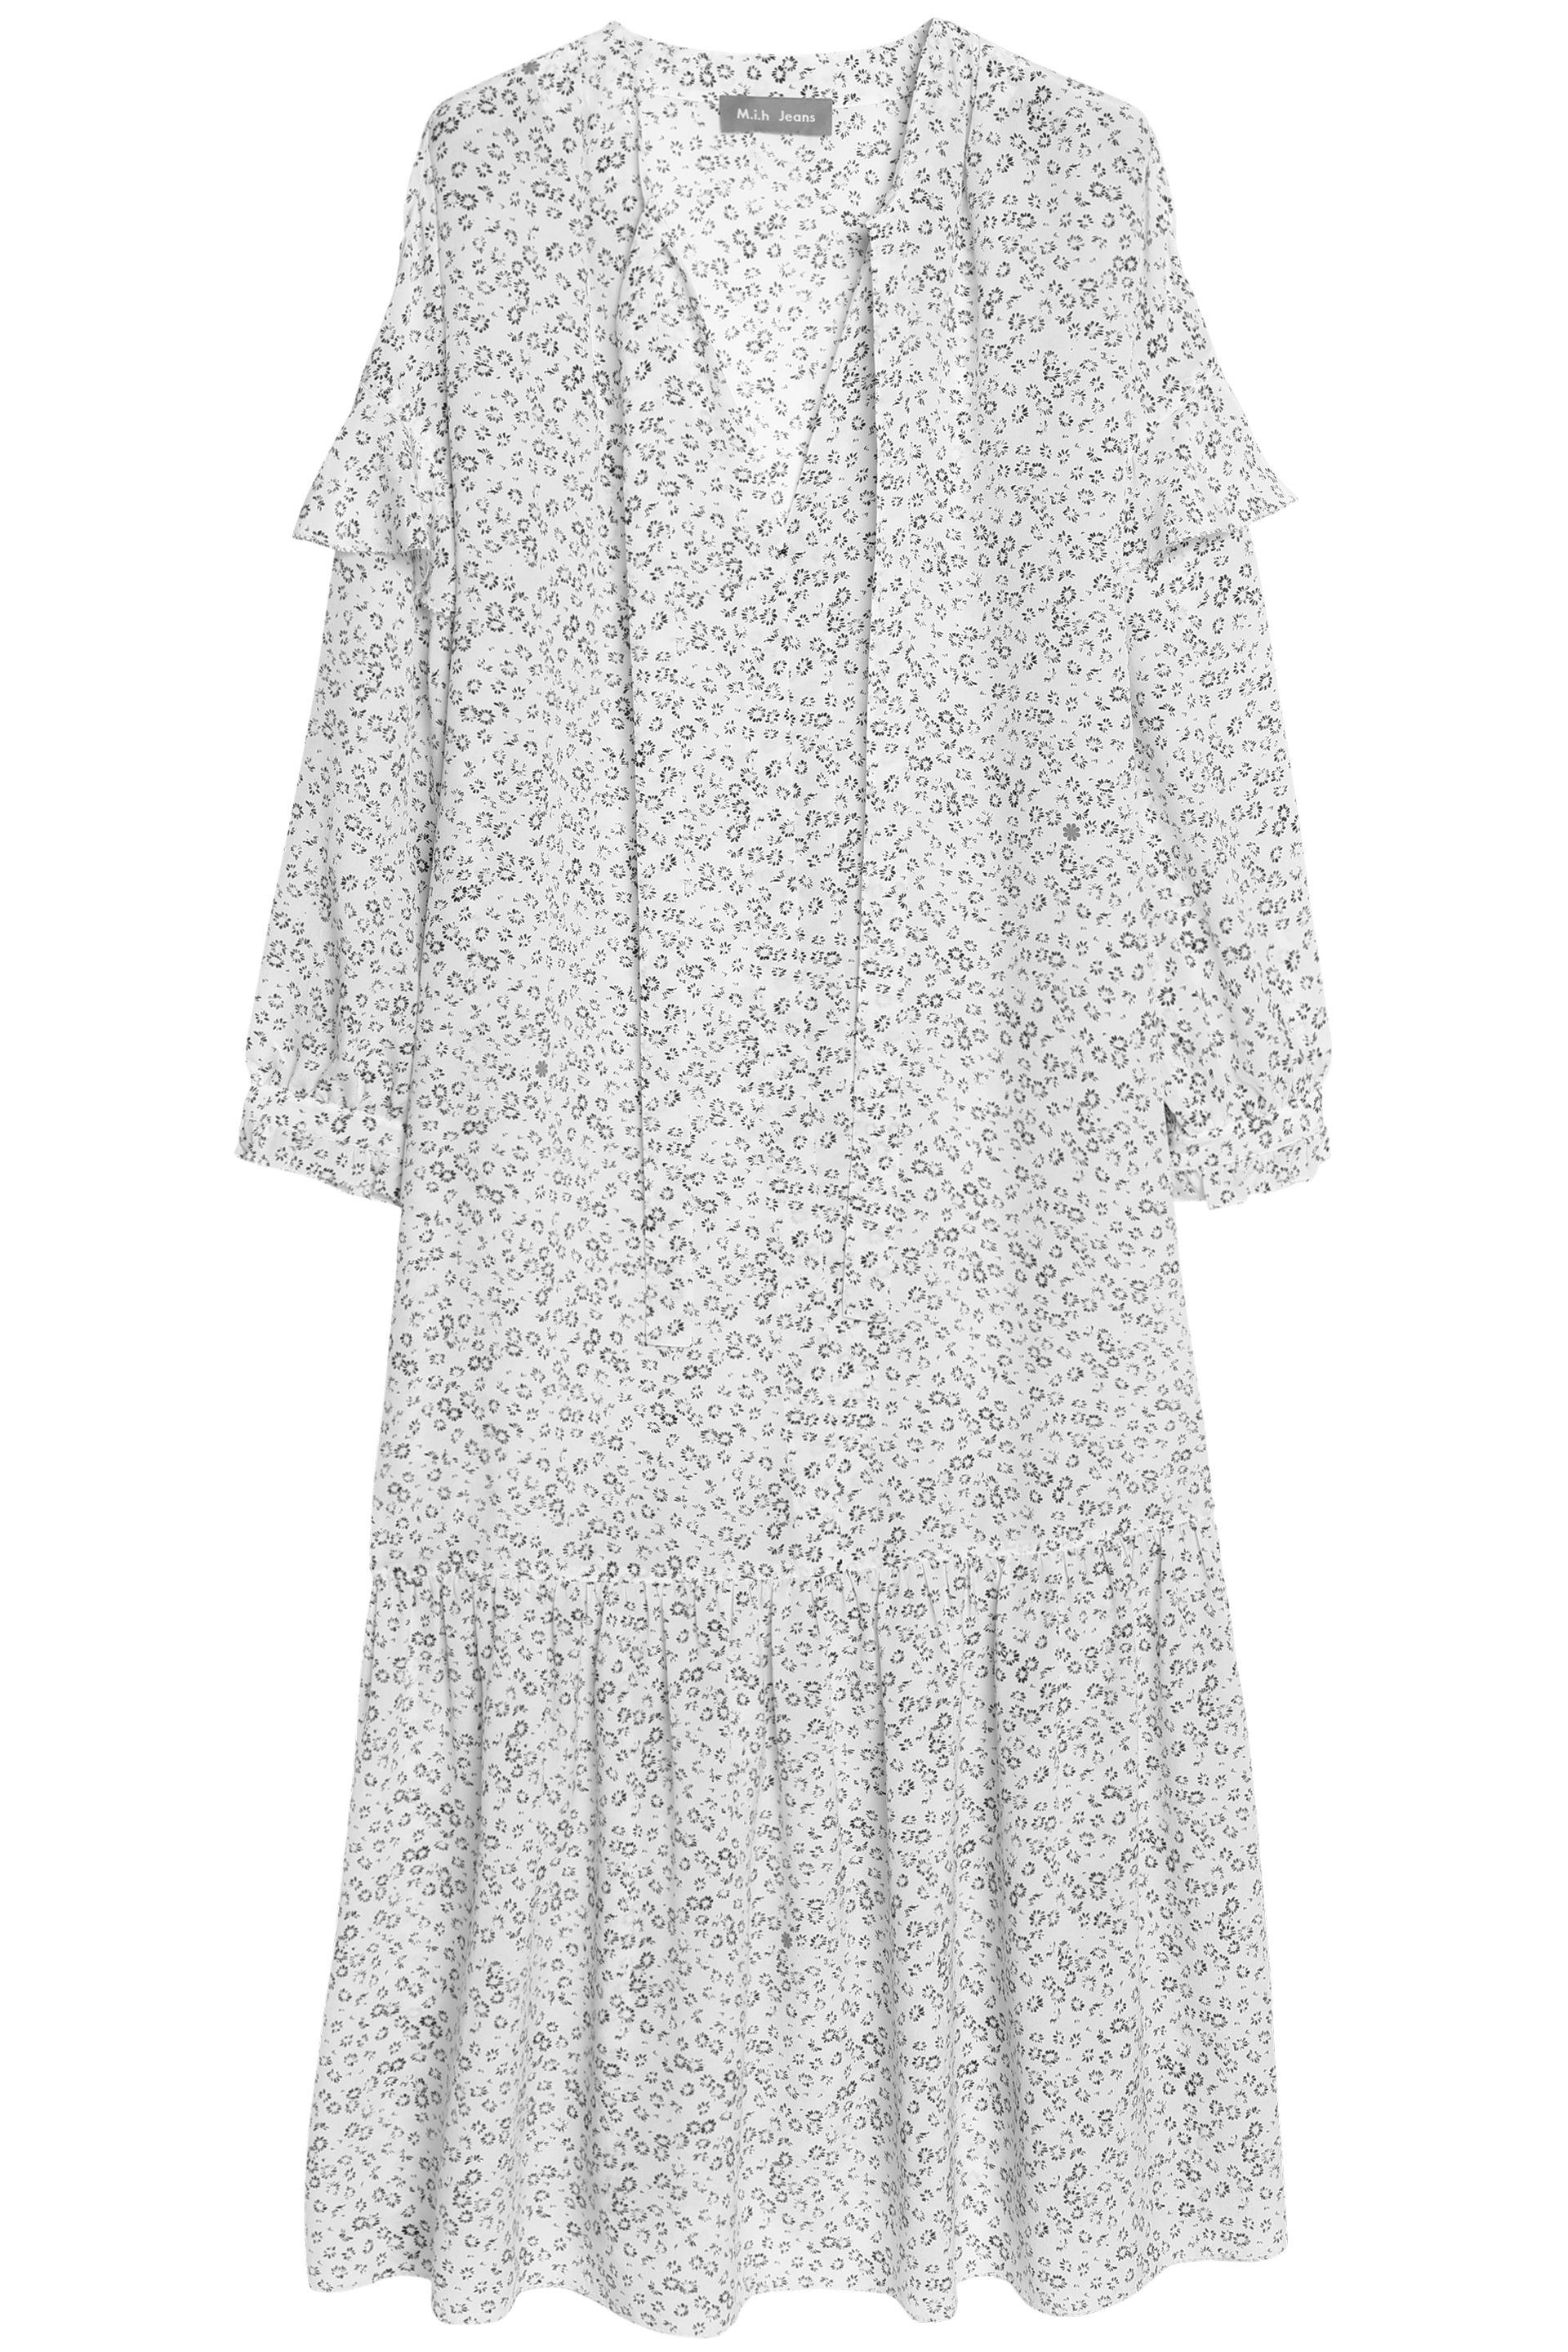 M.i.h Jeans Woman Erika Pussy-bow Floral-print Silk Midi Dress White Size XS Mih Jeans Inexpensive Discount Clearance Buy Cheap Eastbay 9afnaB